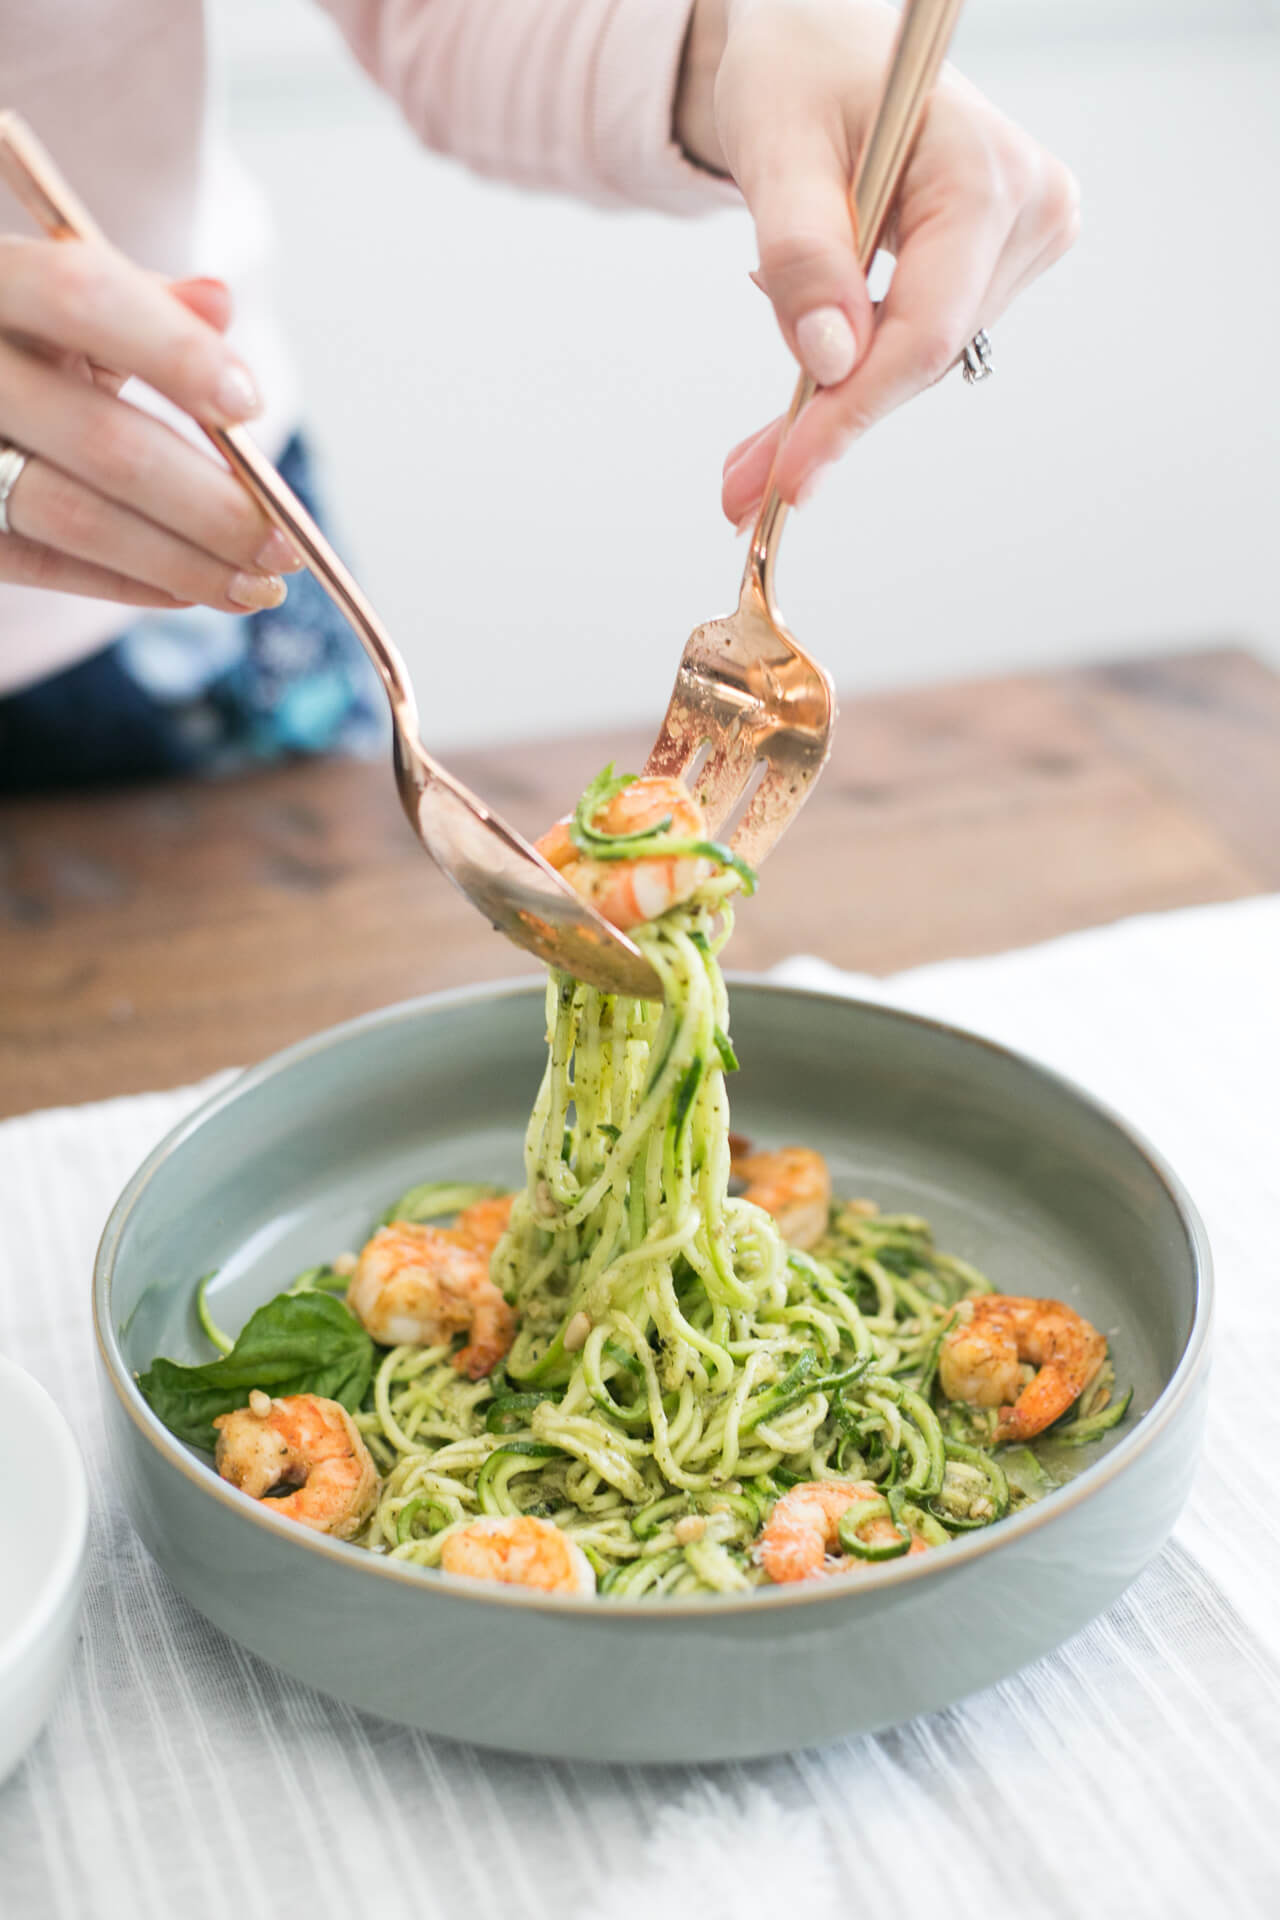 the 15 minute summer pasta you have to try is now up on the blog - M Loves M @marmar